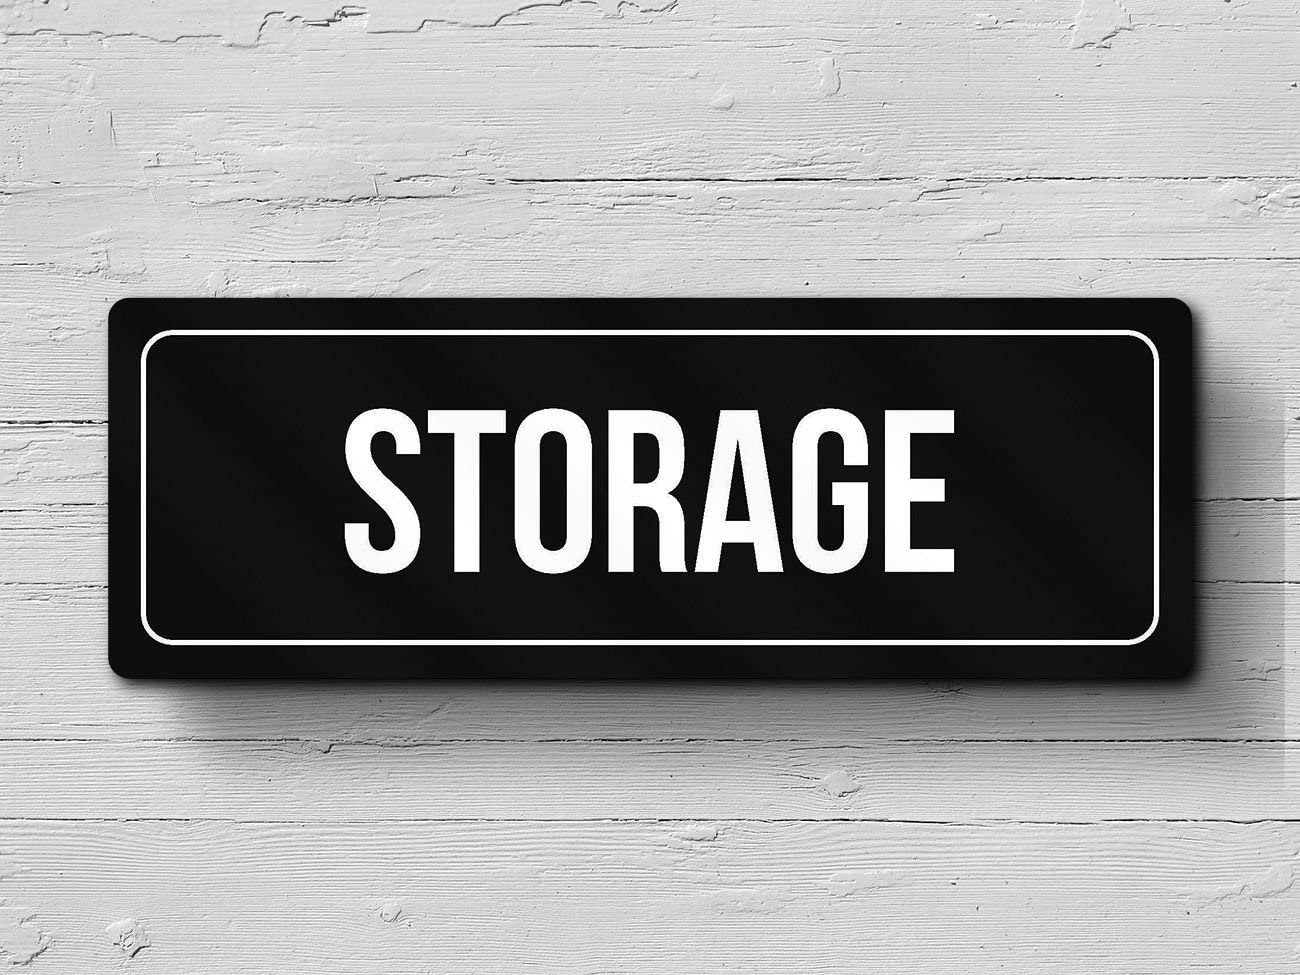 iCandy Combat Black Background with Silver Font Storage Office Business Retail Outdoor /& Indoor Plastic Wall Sign 4 Pack 3x9 Inch